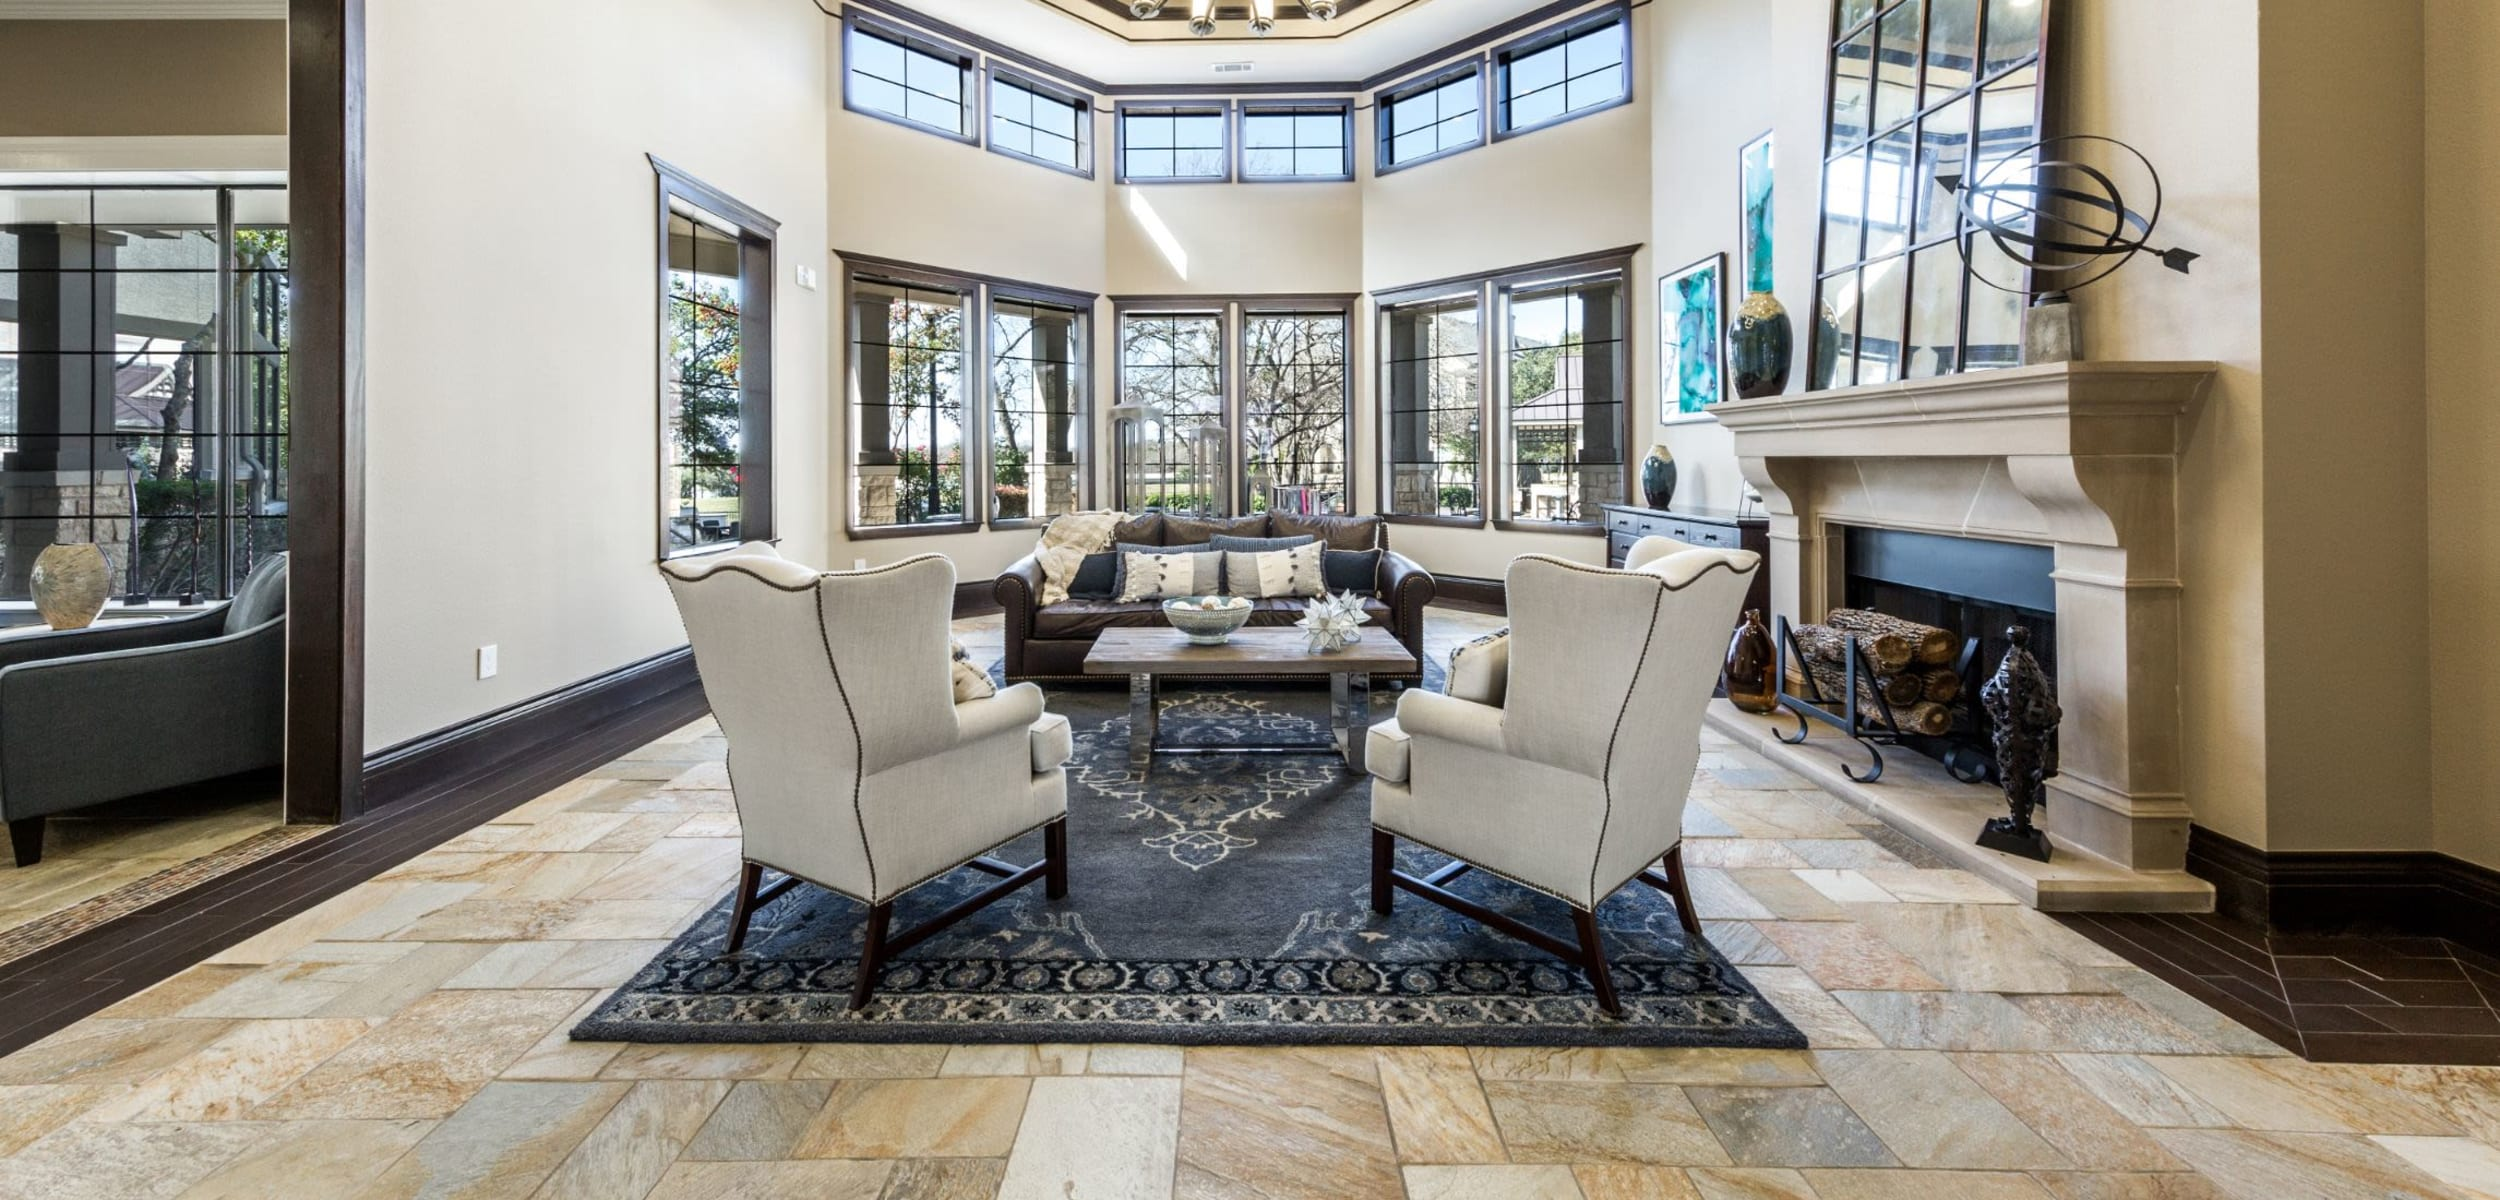 Elegant sitting area with tile floors and a large rug at The Marquis at Brushy Creek in Austin, Texas